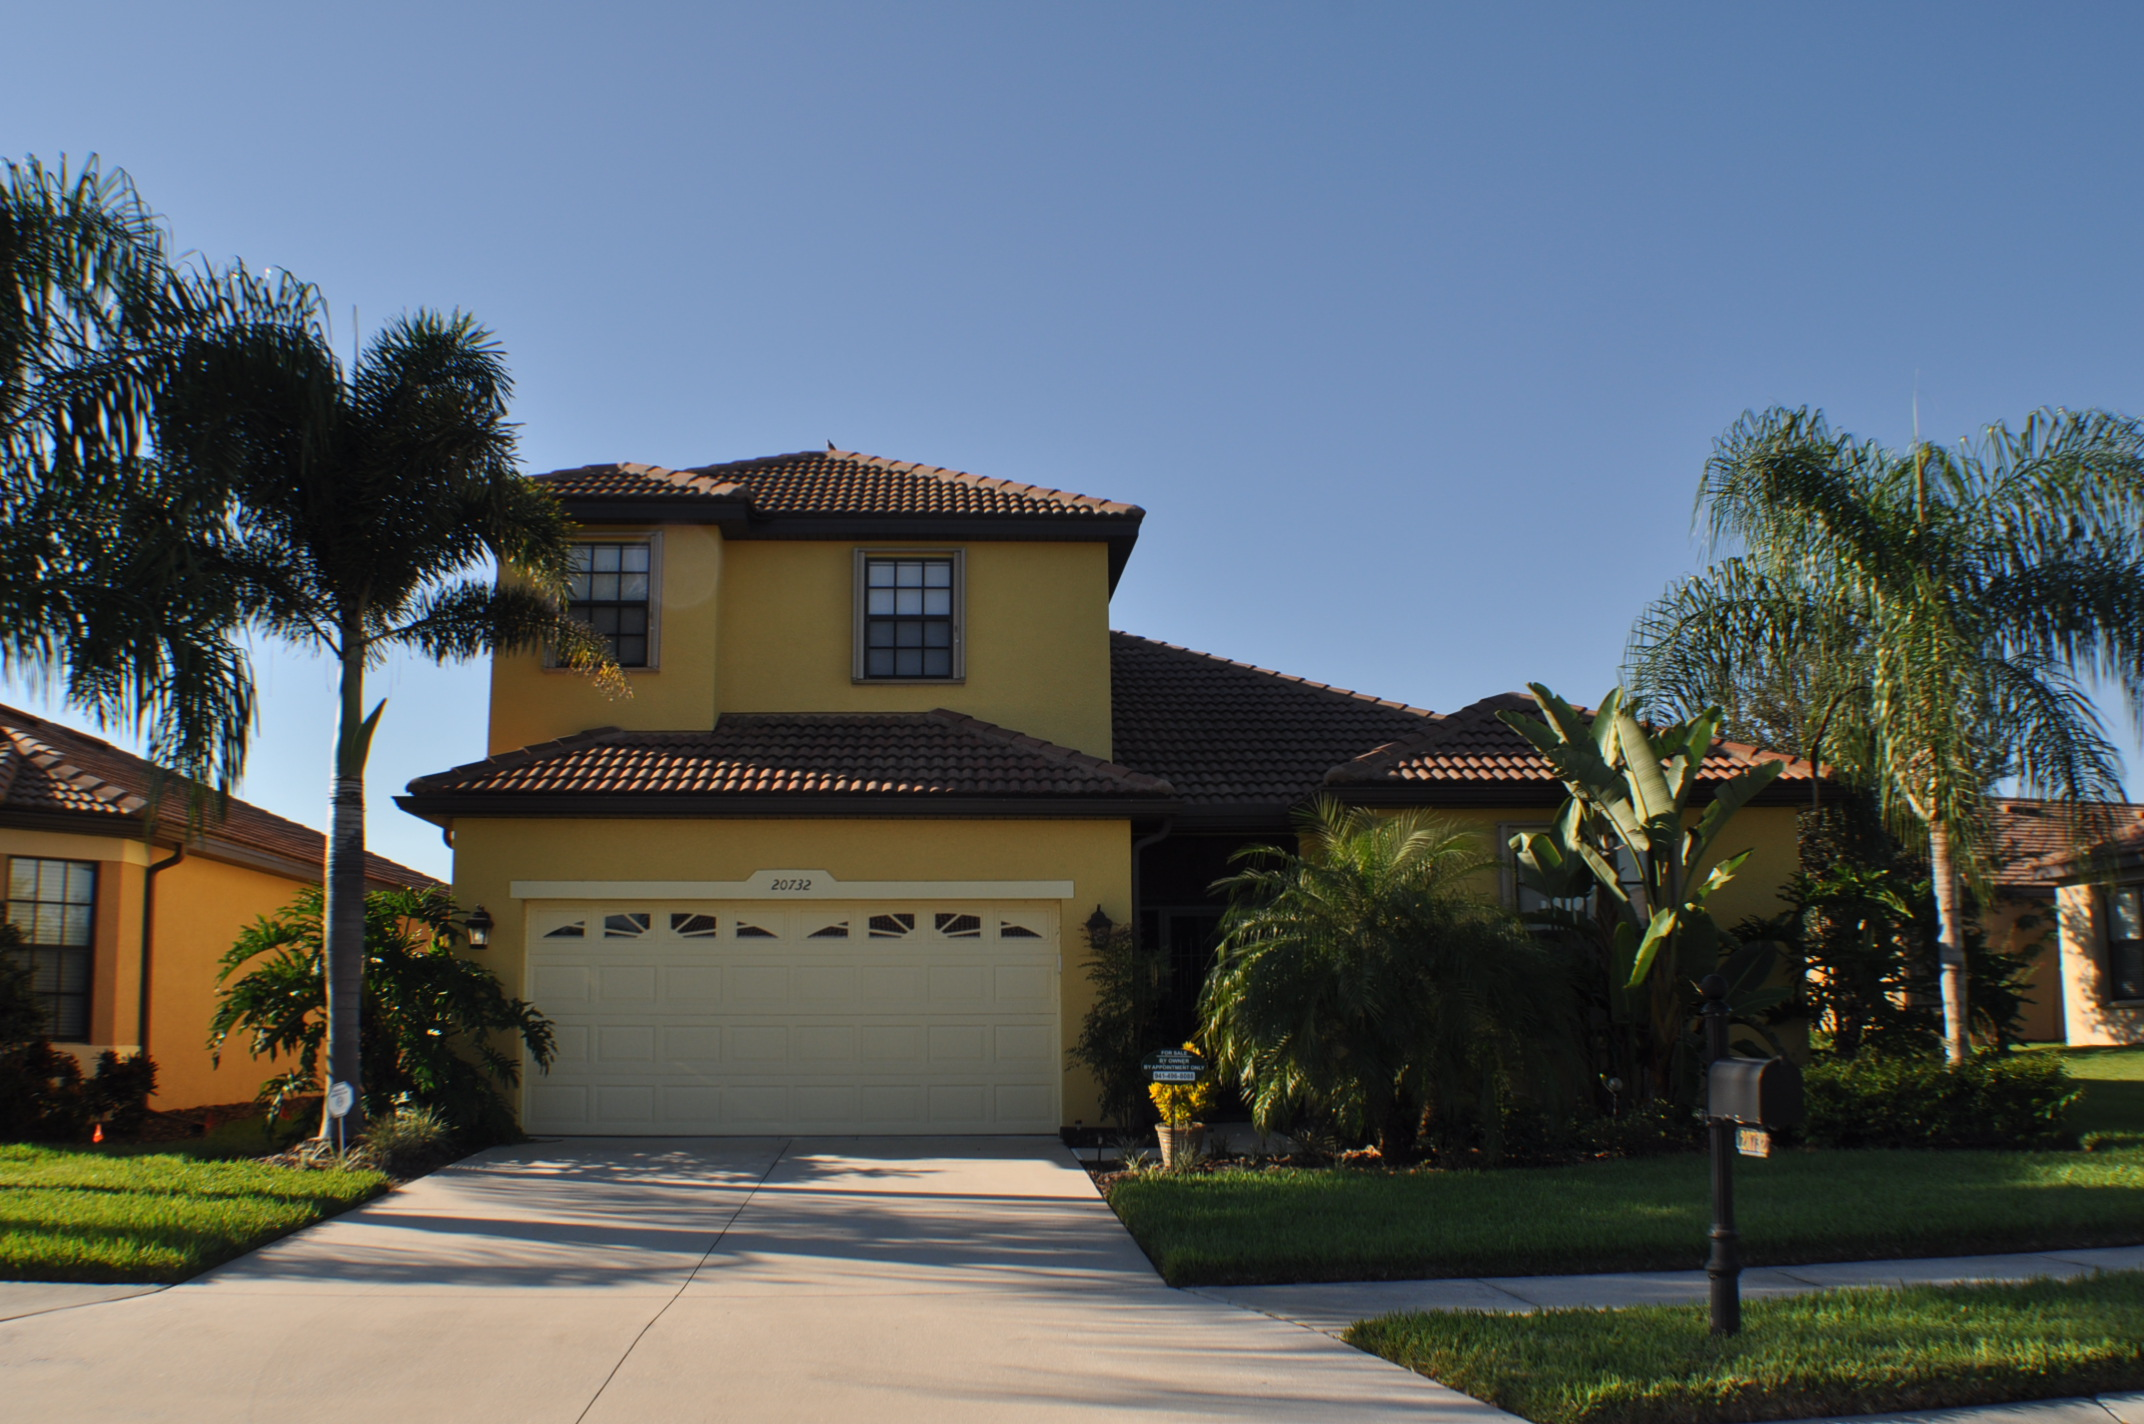 Home Painter Venice, Florida